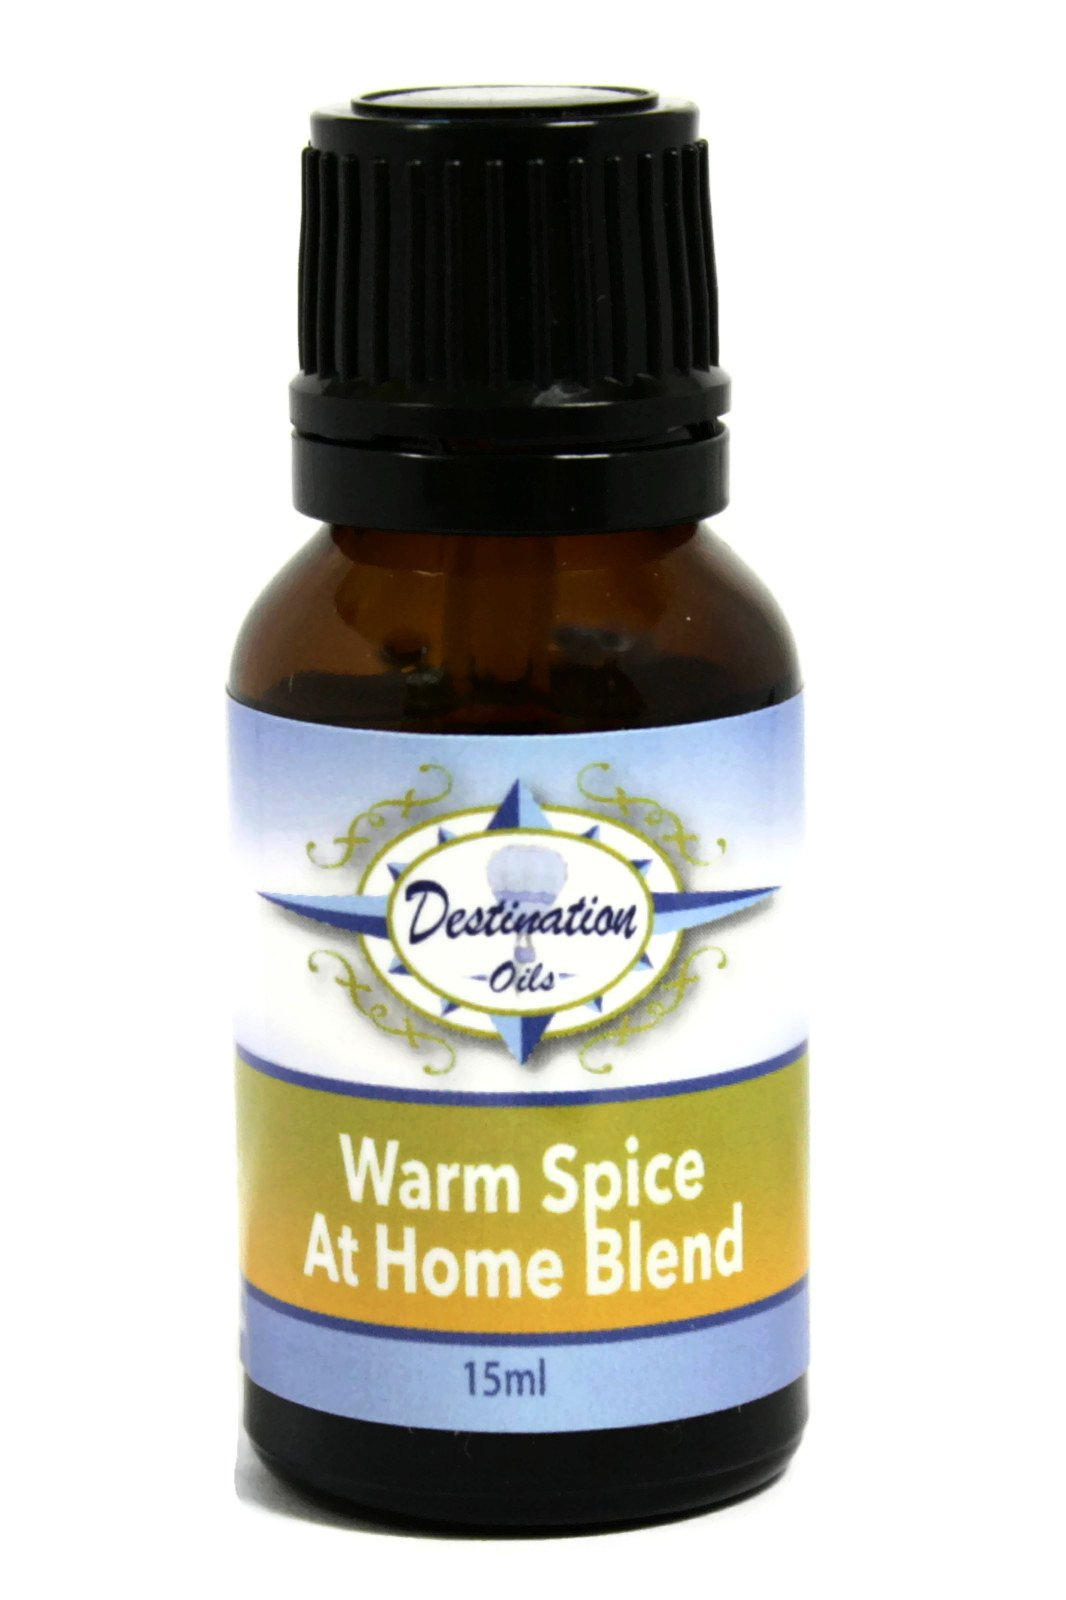 Warm Spice- At Home Essential Oil Blend - 15ml-Essential Oil Blend-Destination Oils